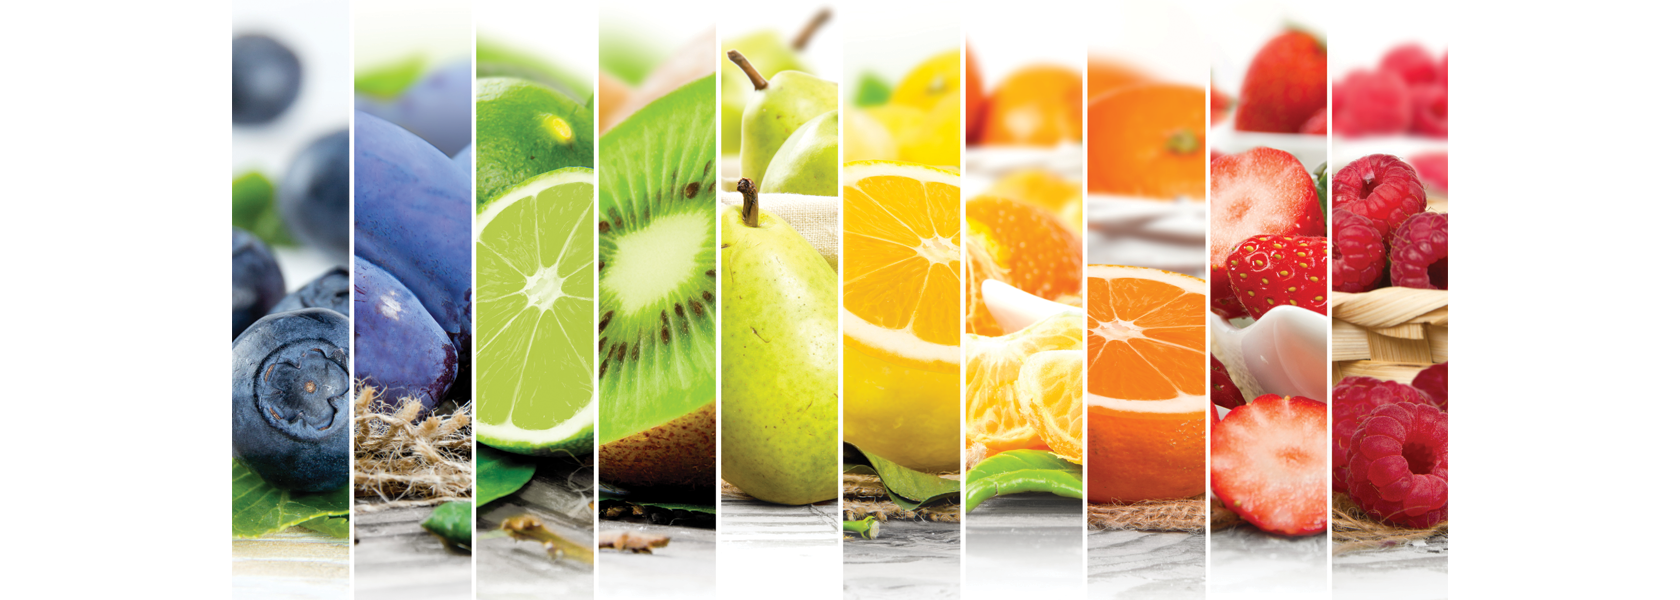 A variety of healthy fruits to help improve optimum nutrition